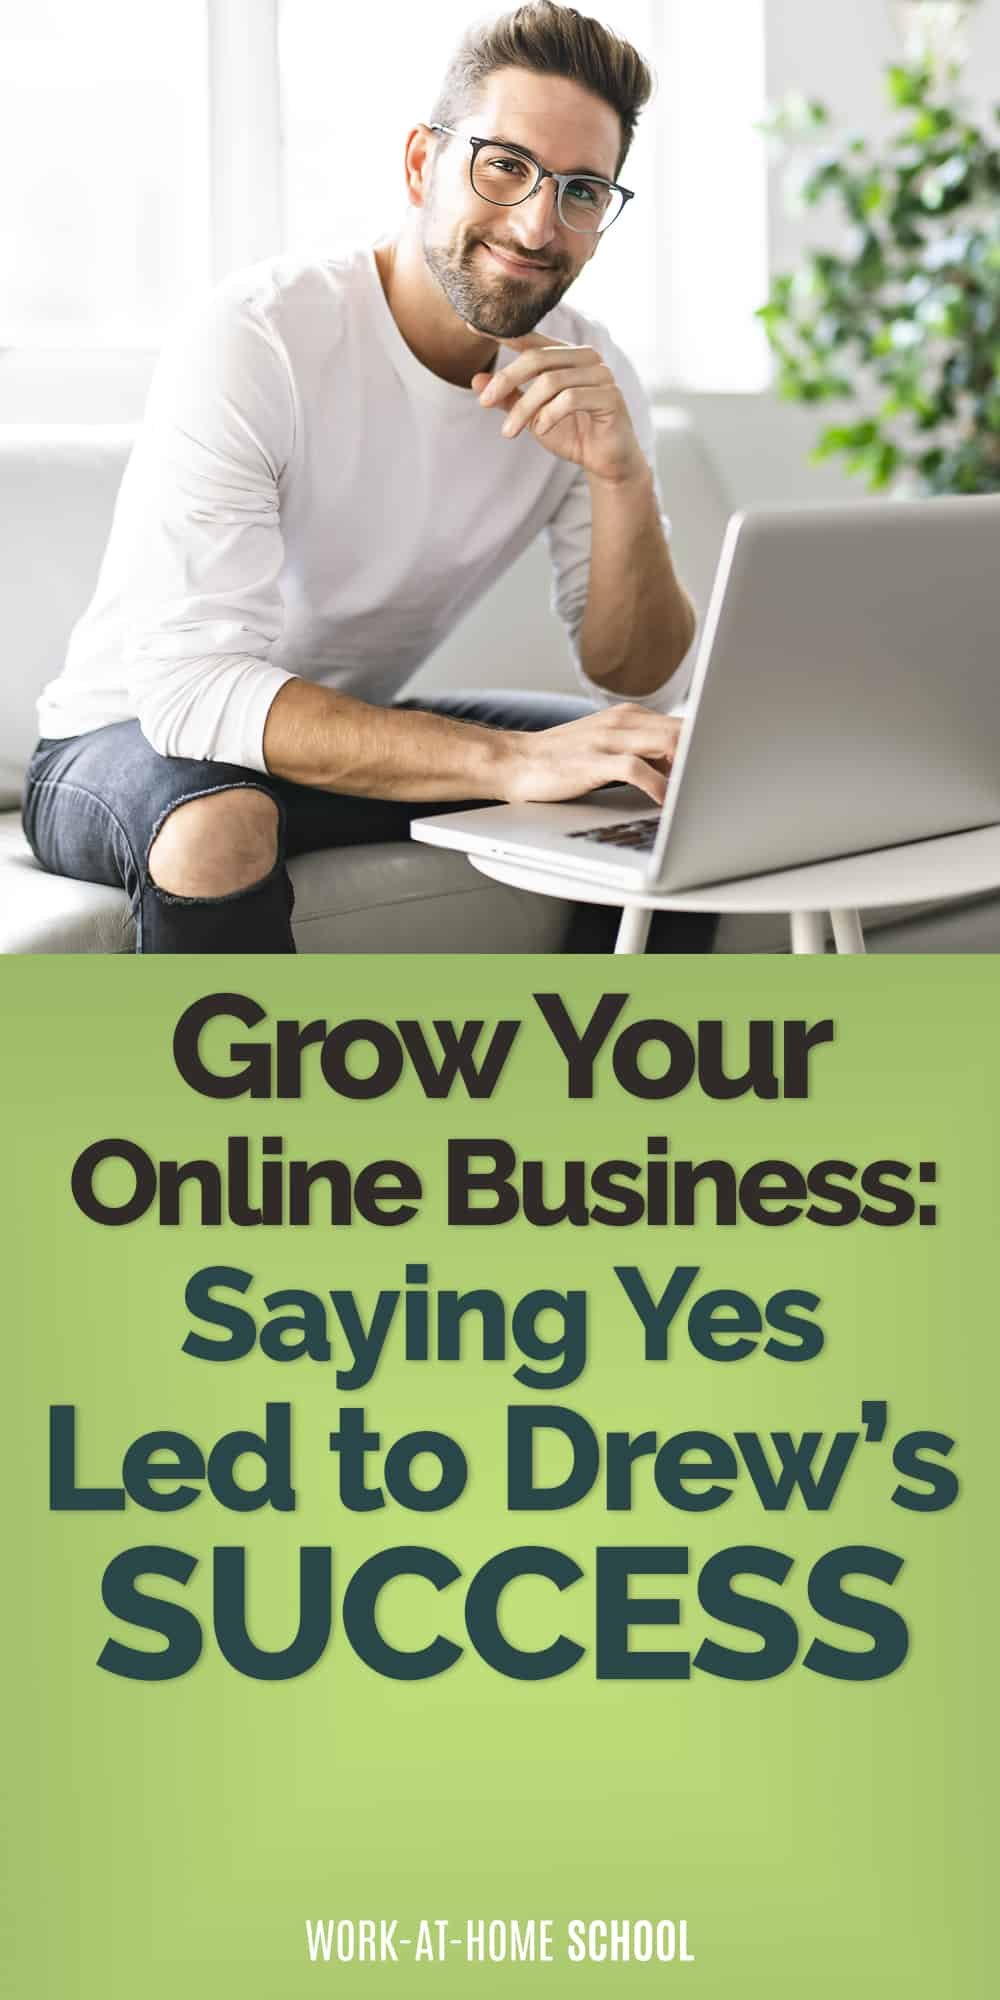 Grow your online business by saying yes to opportunities that scare you!